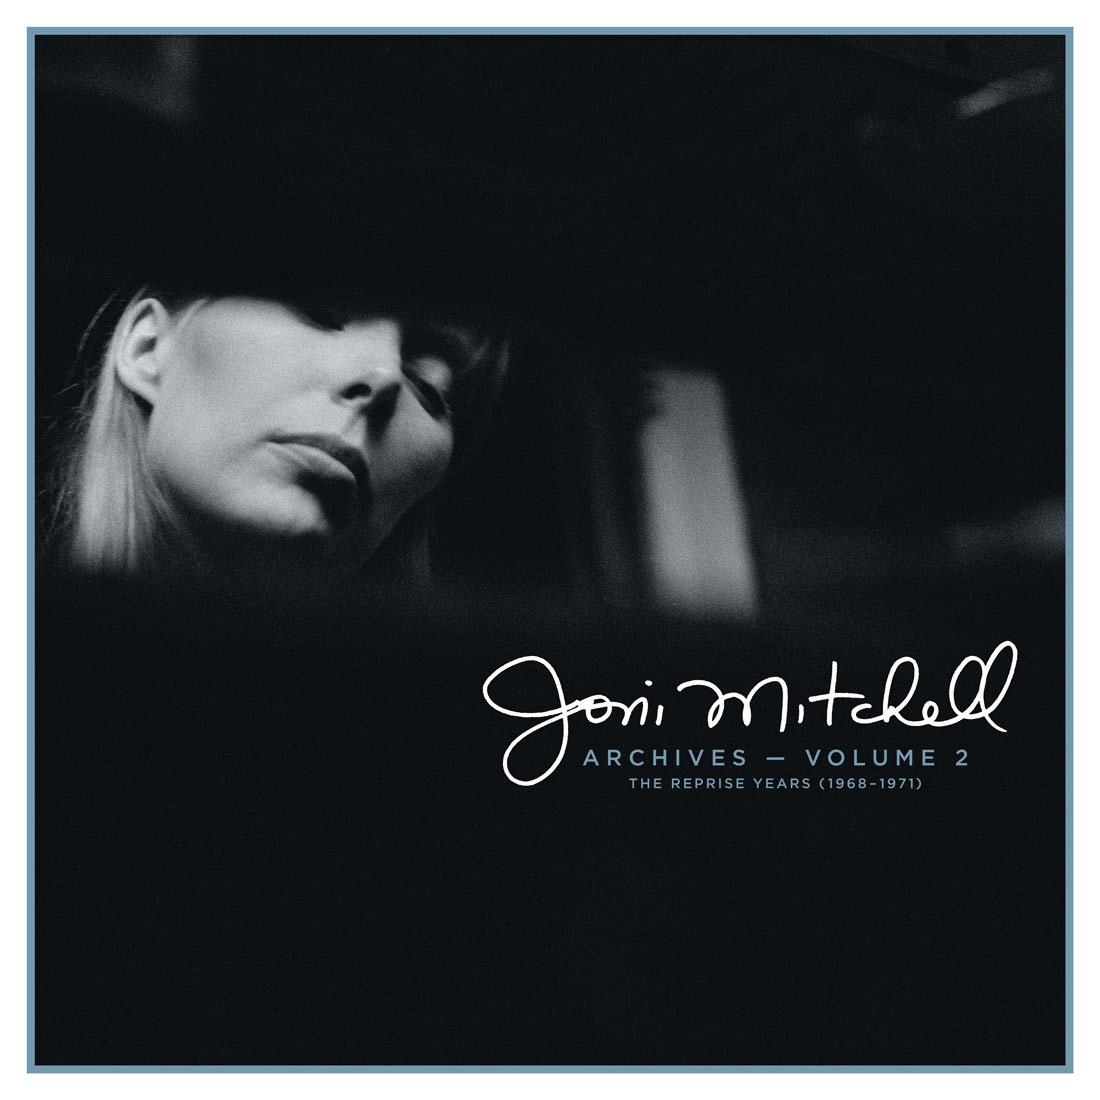 Joni MItchell / Archives Vol 2: The Reprise Years 1967-1971 5CD box set